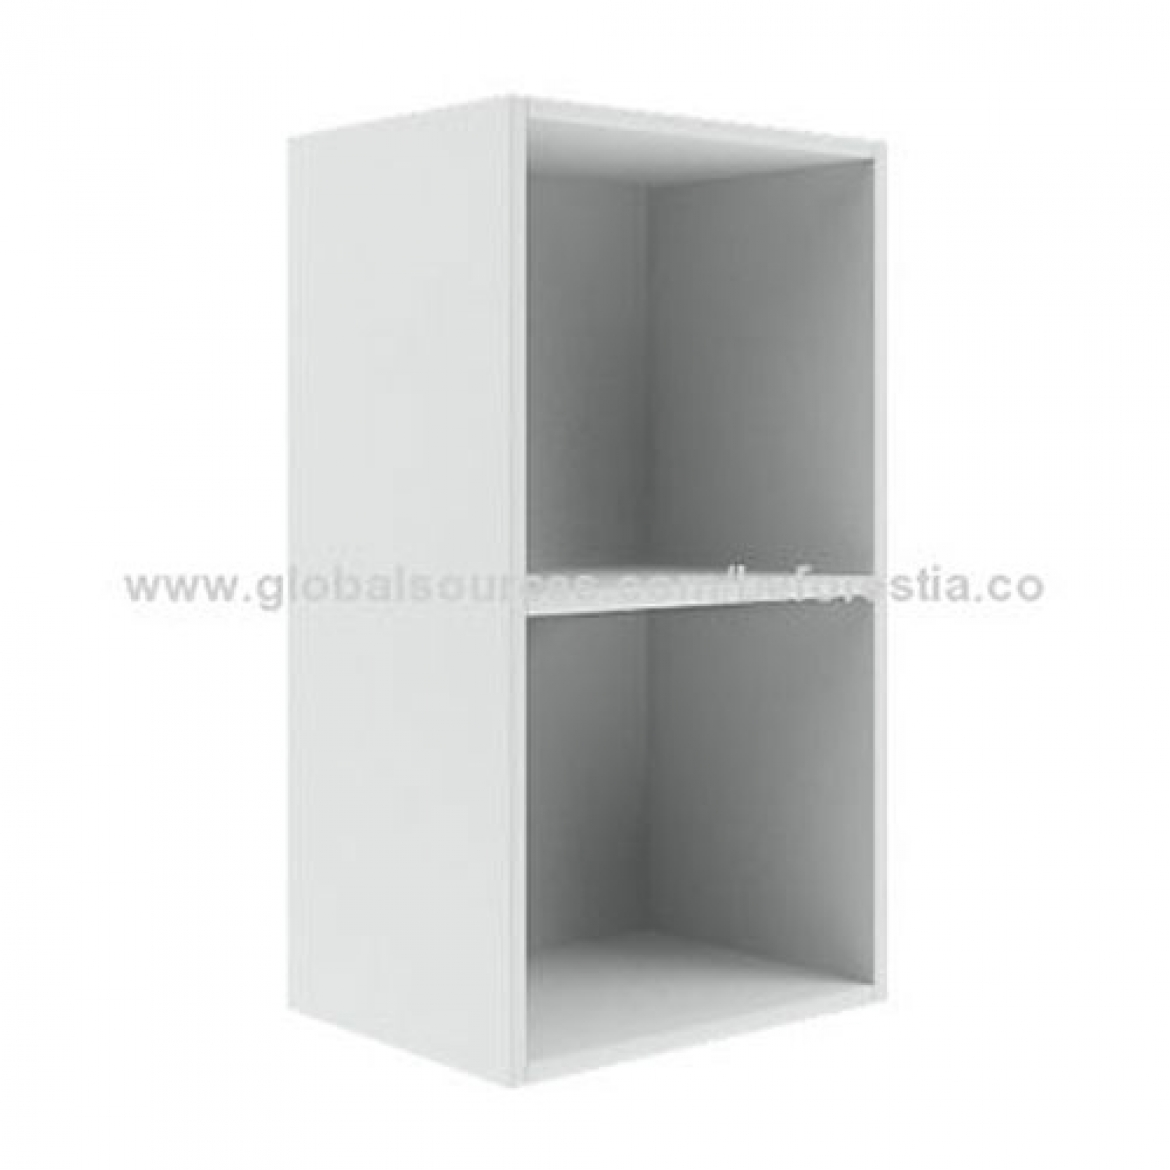 400 mm wall hung cabinet [1 door]